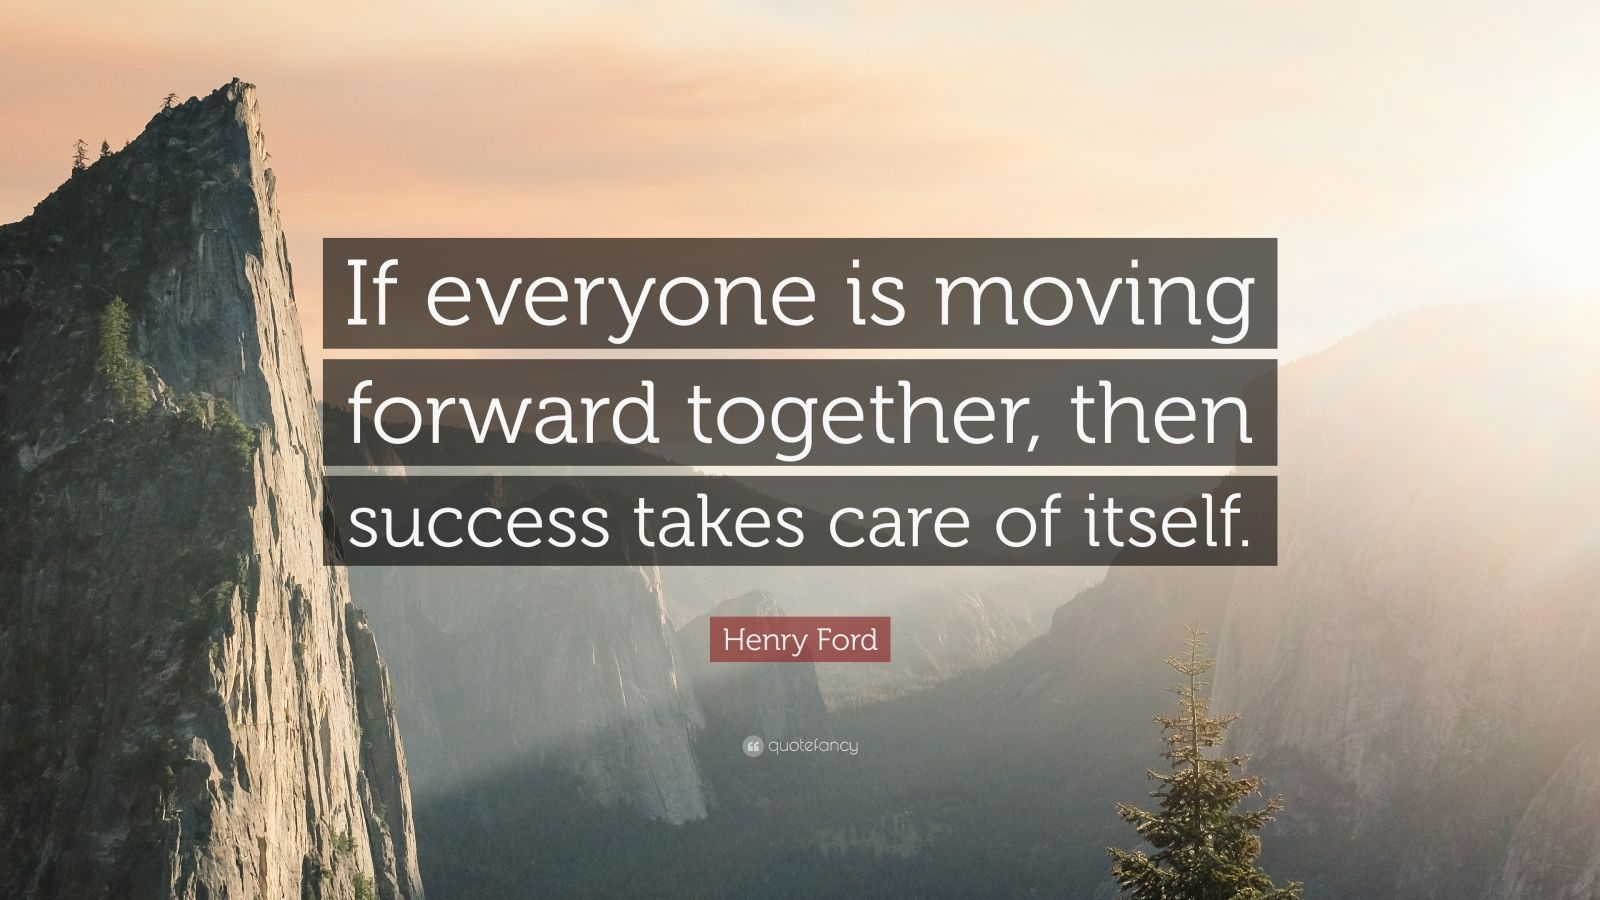 Relationship Quotes Wallpapers Henry Ford Quote If Everyone Is Moving Forward Together